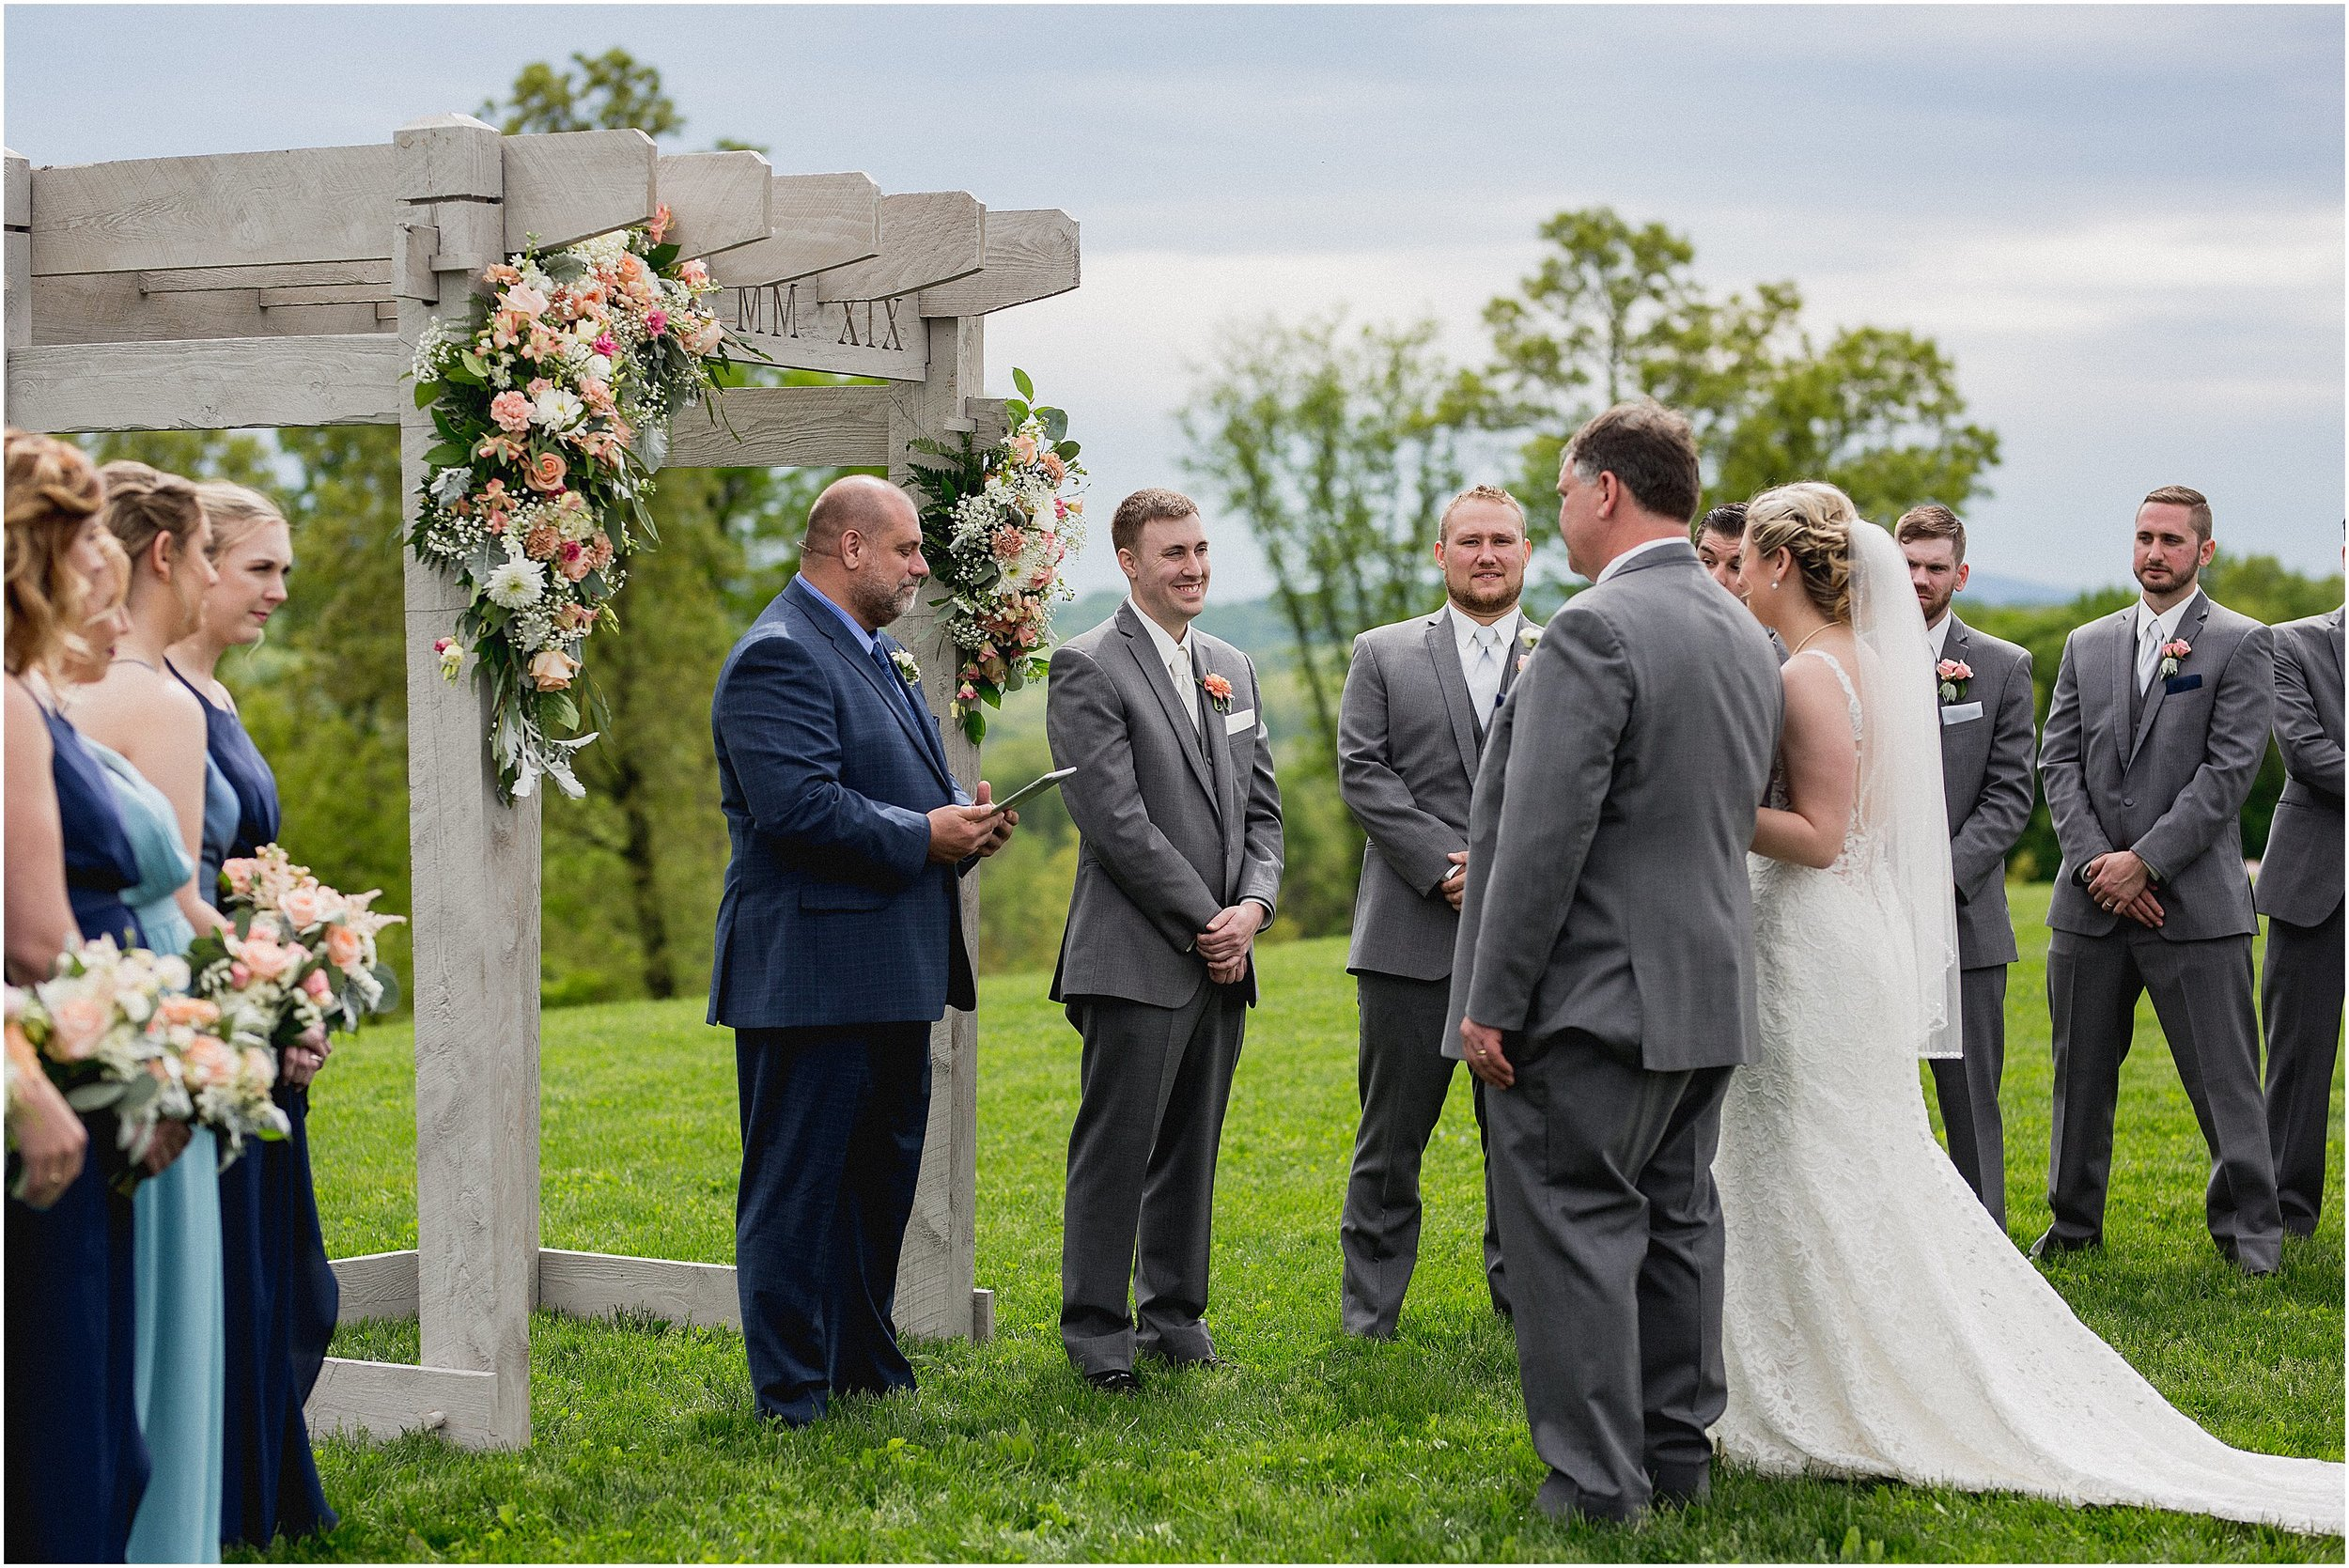 Whispering_Oaks_Wedding_Photographer_0473.jpg